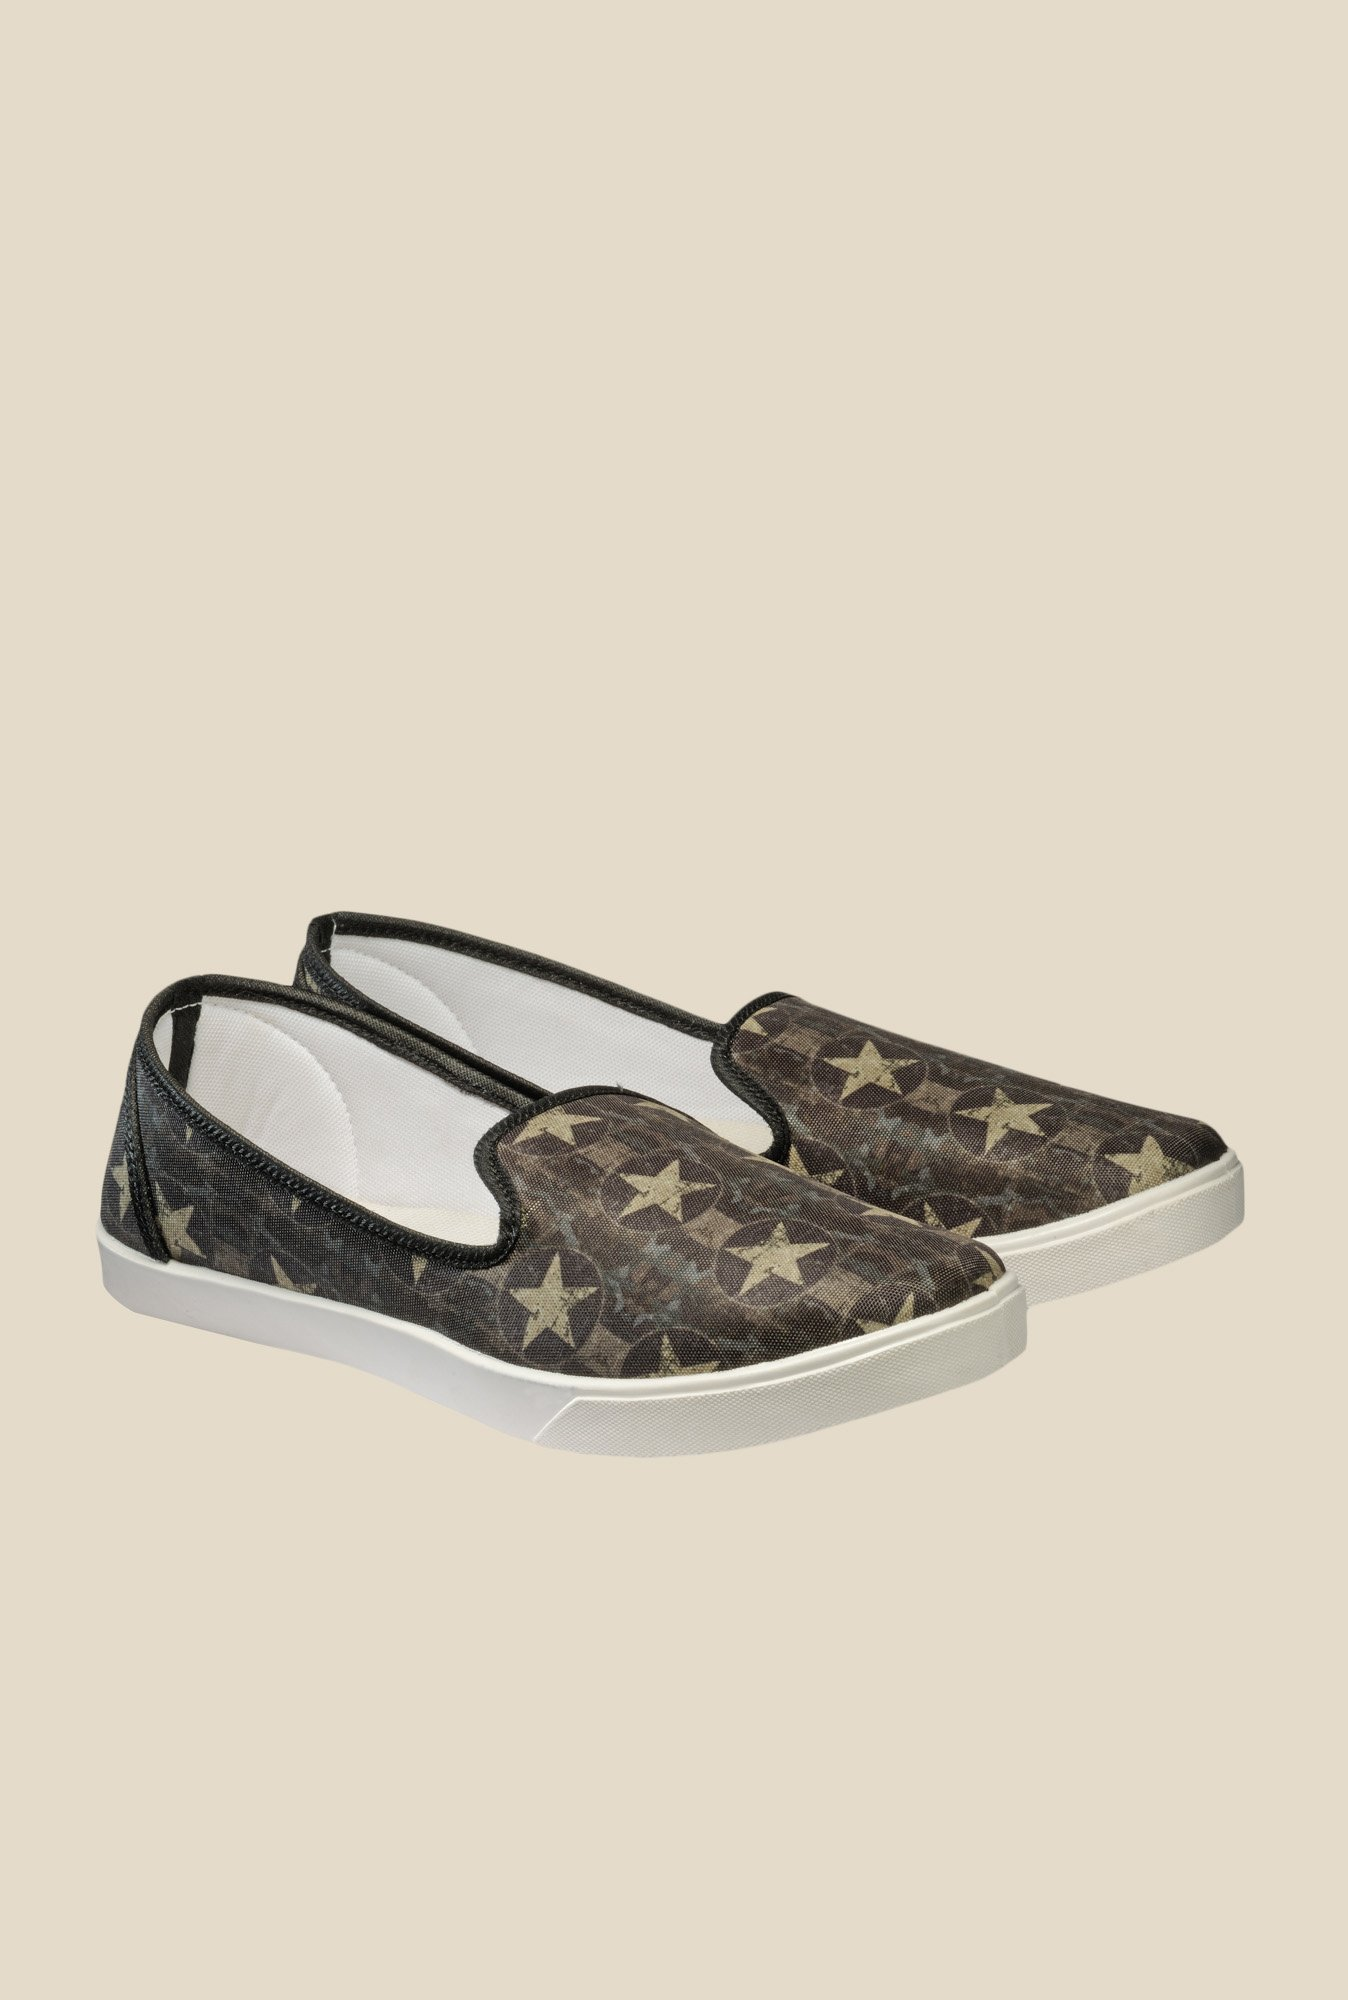 Juan David Olive Green Plimsolls